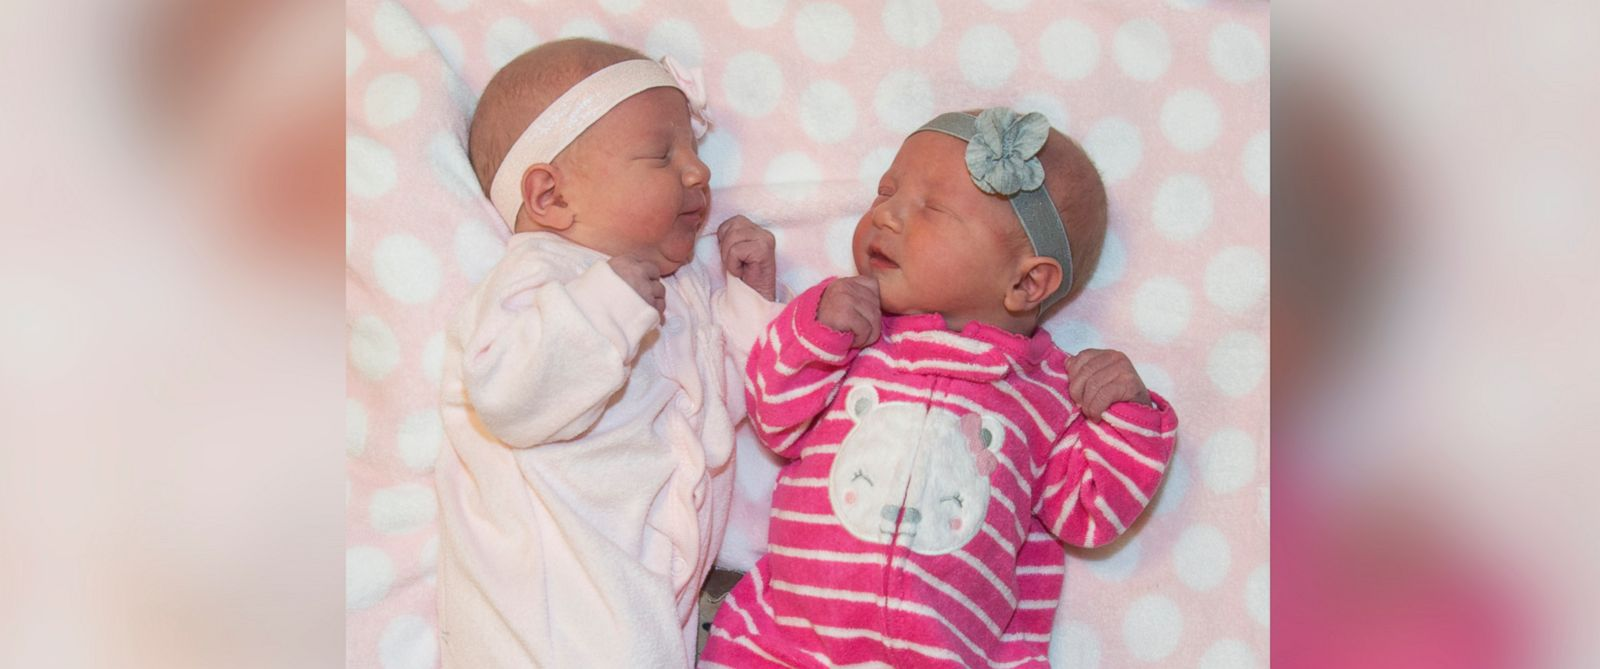 PHOTO: Merrick and Lennon born at Saint Lukes East Hospital in Lees Summit, Missouri.